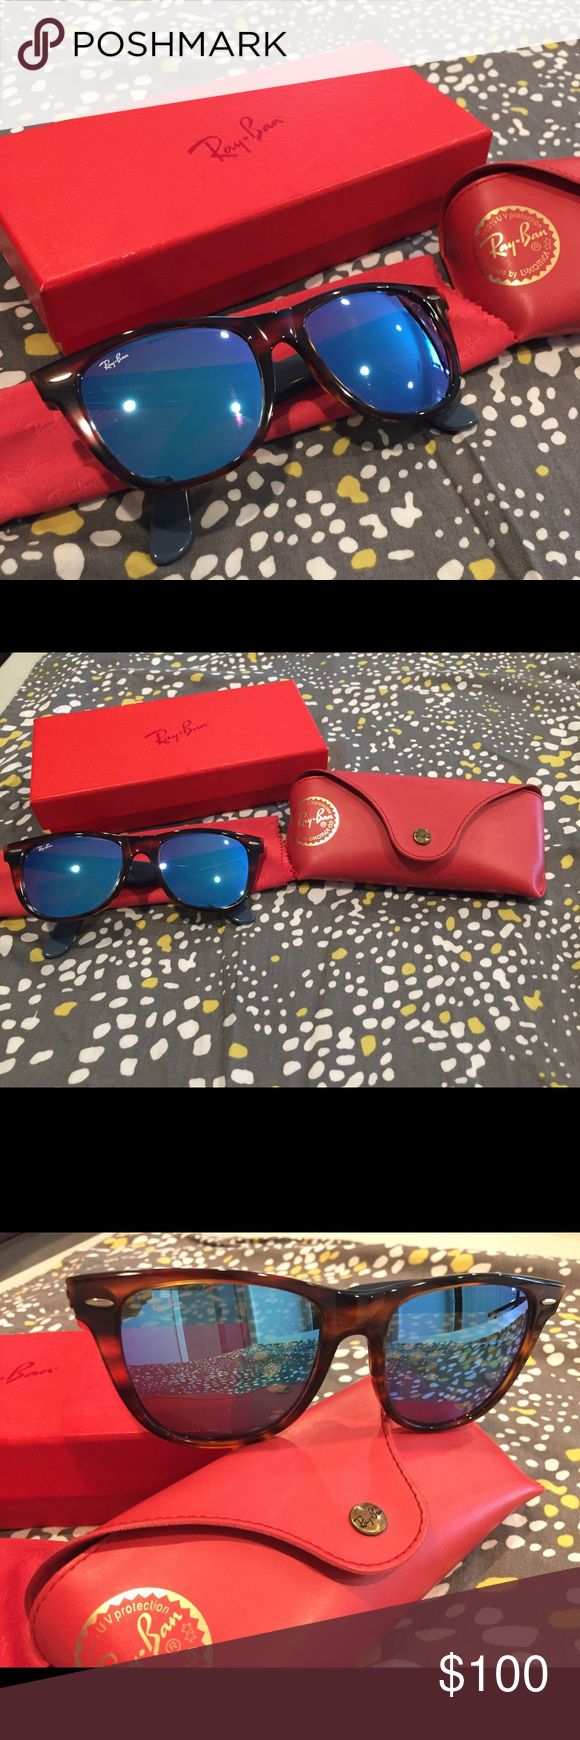 Mirrored Wayfarer Ray Bans 😎 100% authentic Ray-Ban. Frame: tortoise. Lens: blue mirror. Very cute & stylish. Comes with box, case & cleaning cloth. No scratches. Only worn 1-2 times. Smoke free home 😎 Ray-Ban Accessories Sunglasses